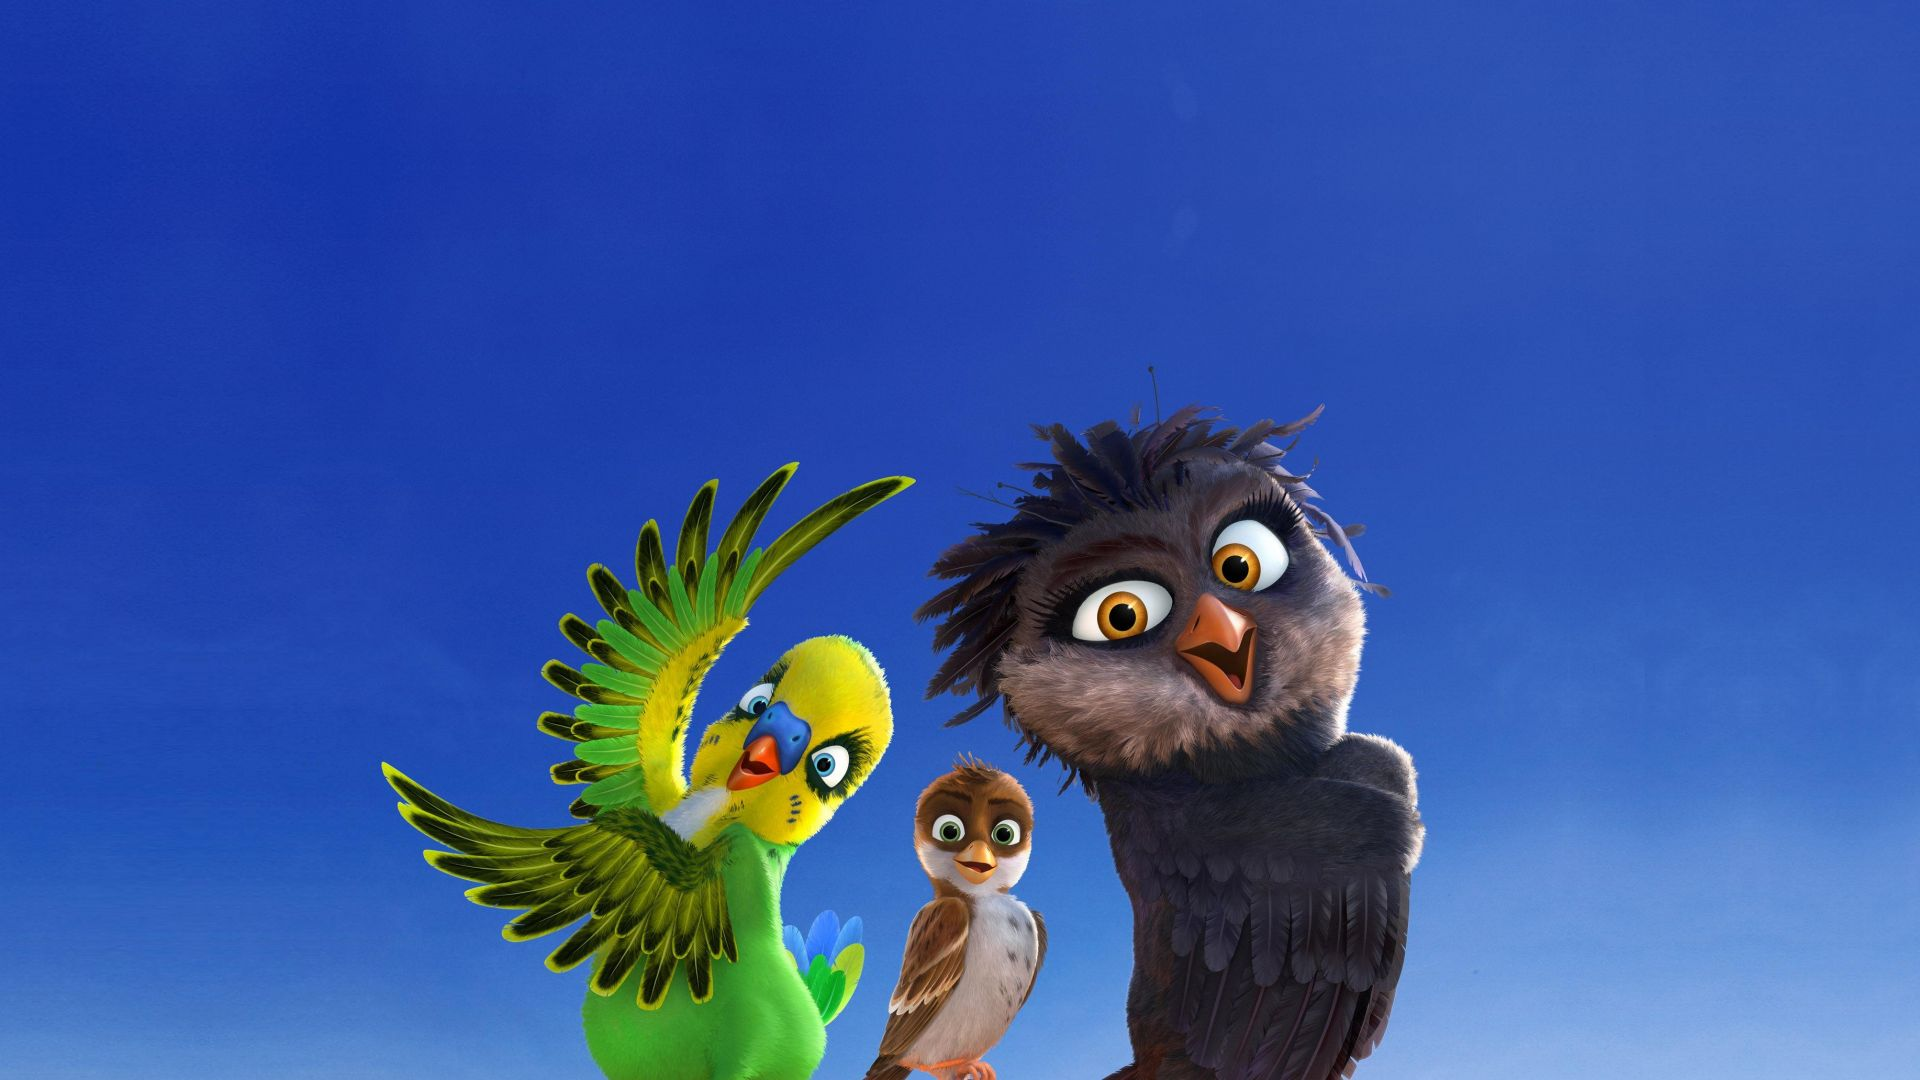 Richard the Stork, birds, Best Animation Movies of 2016 (horizontal)